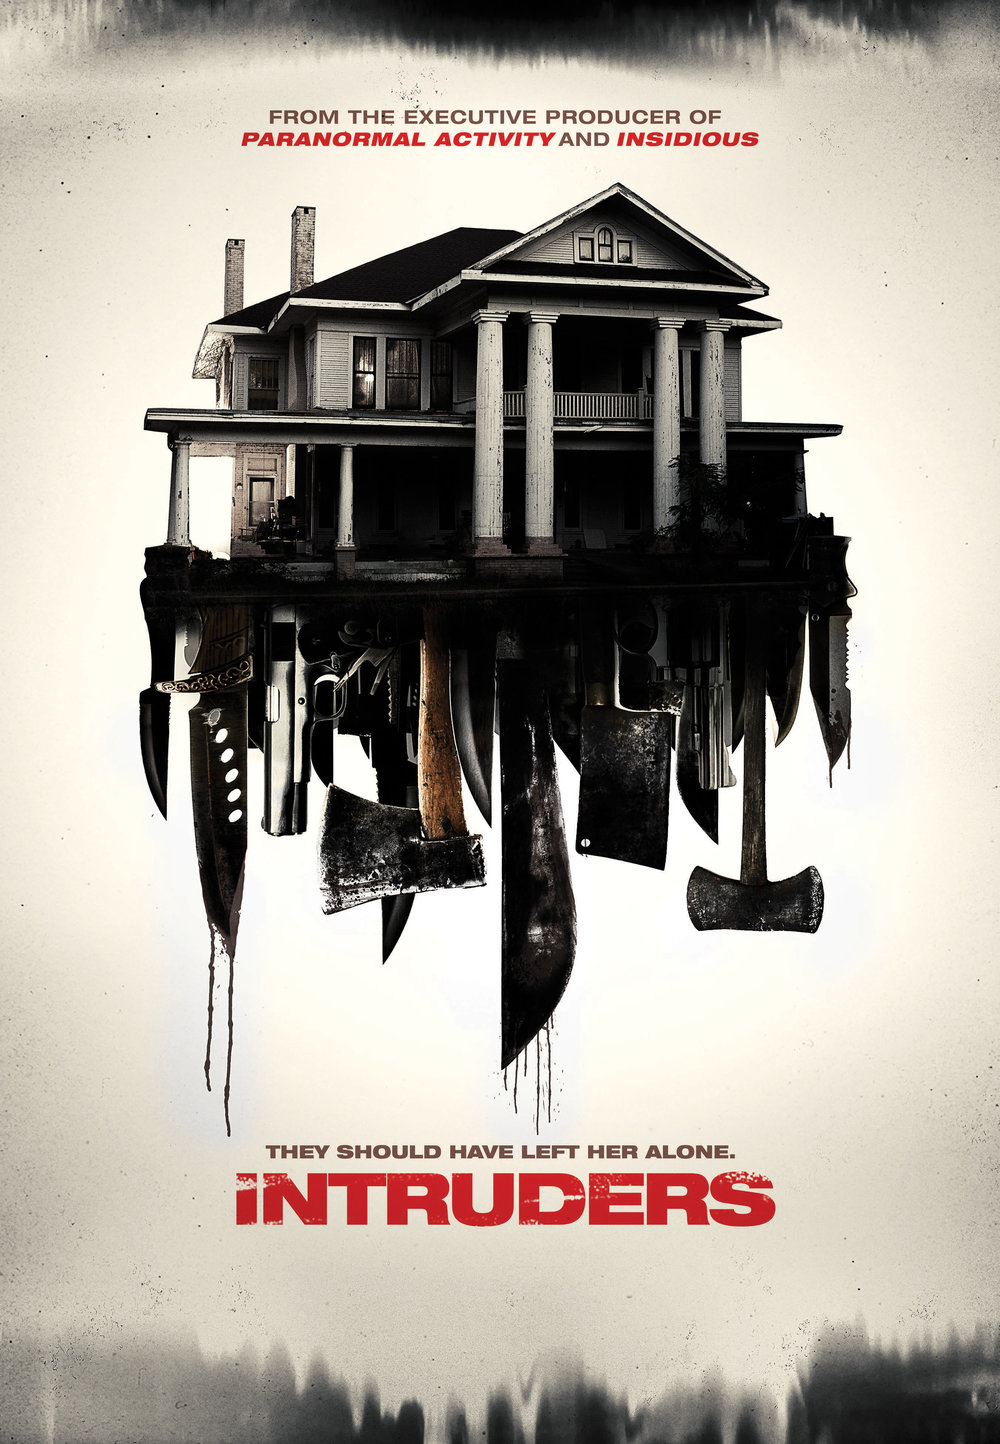 Intruders_1SHT_PROOF-1.jpg